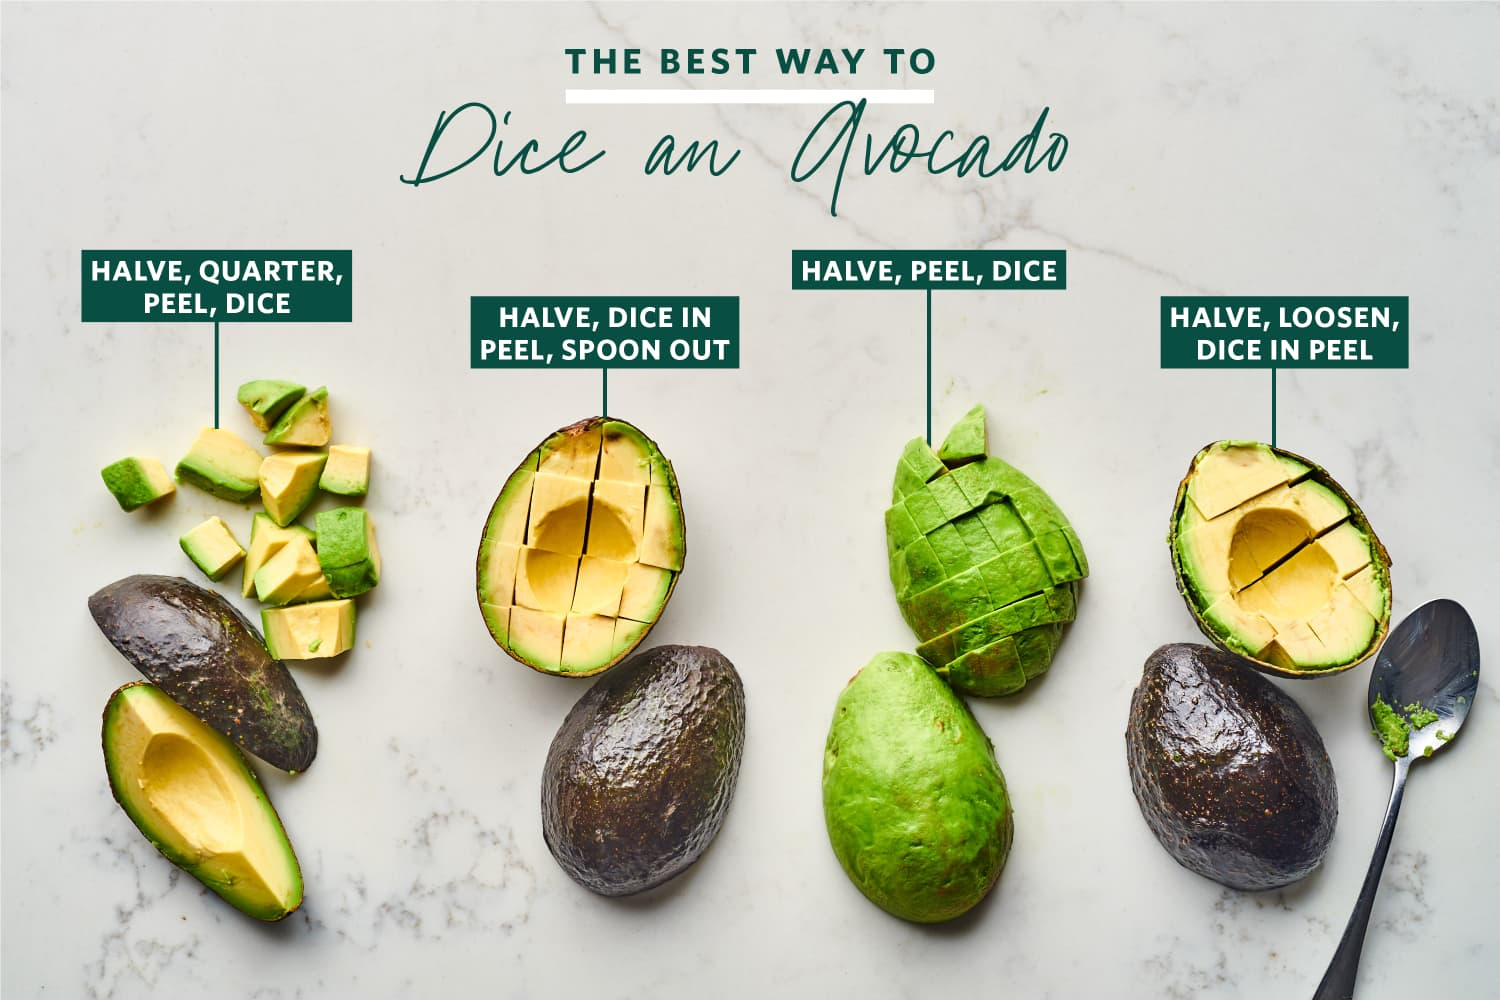 We Tried 4 Popular Methods for Dicing an Avocado and the Winner Was Also the Easiest